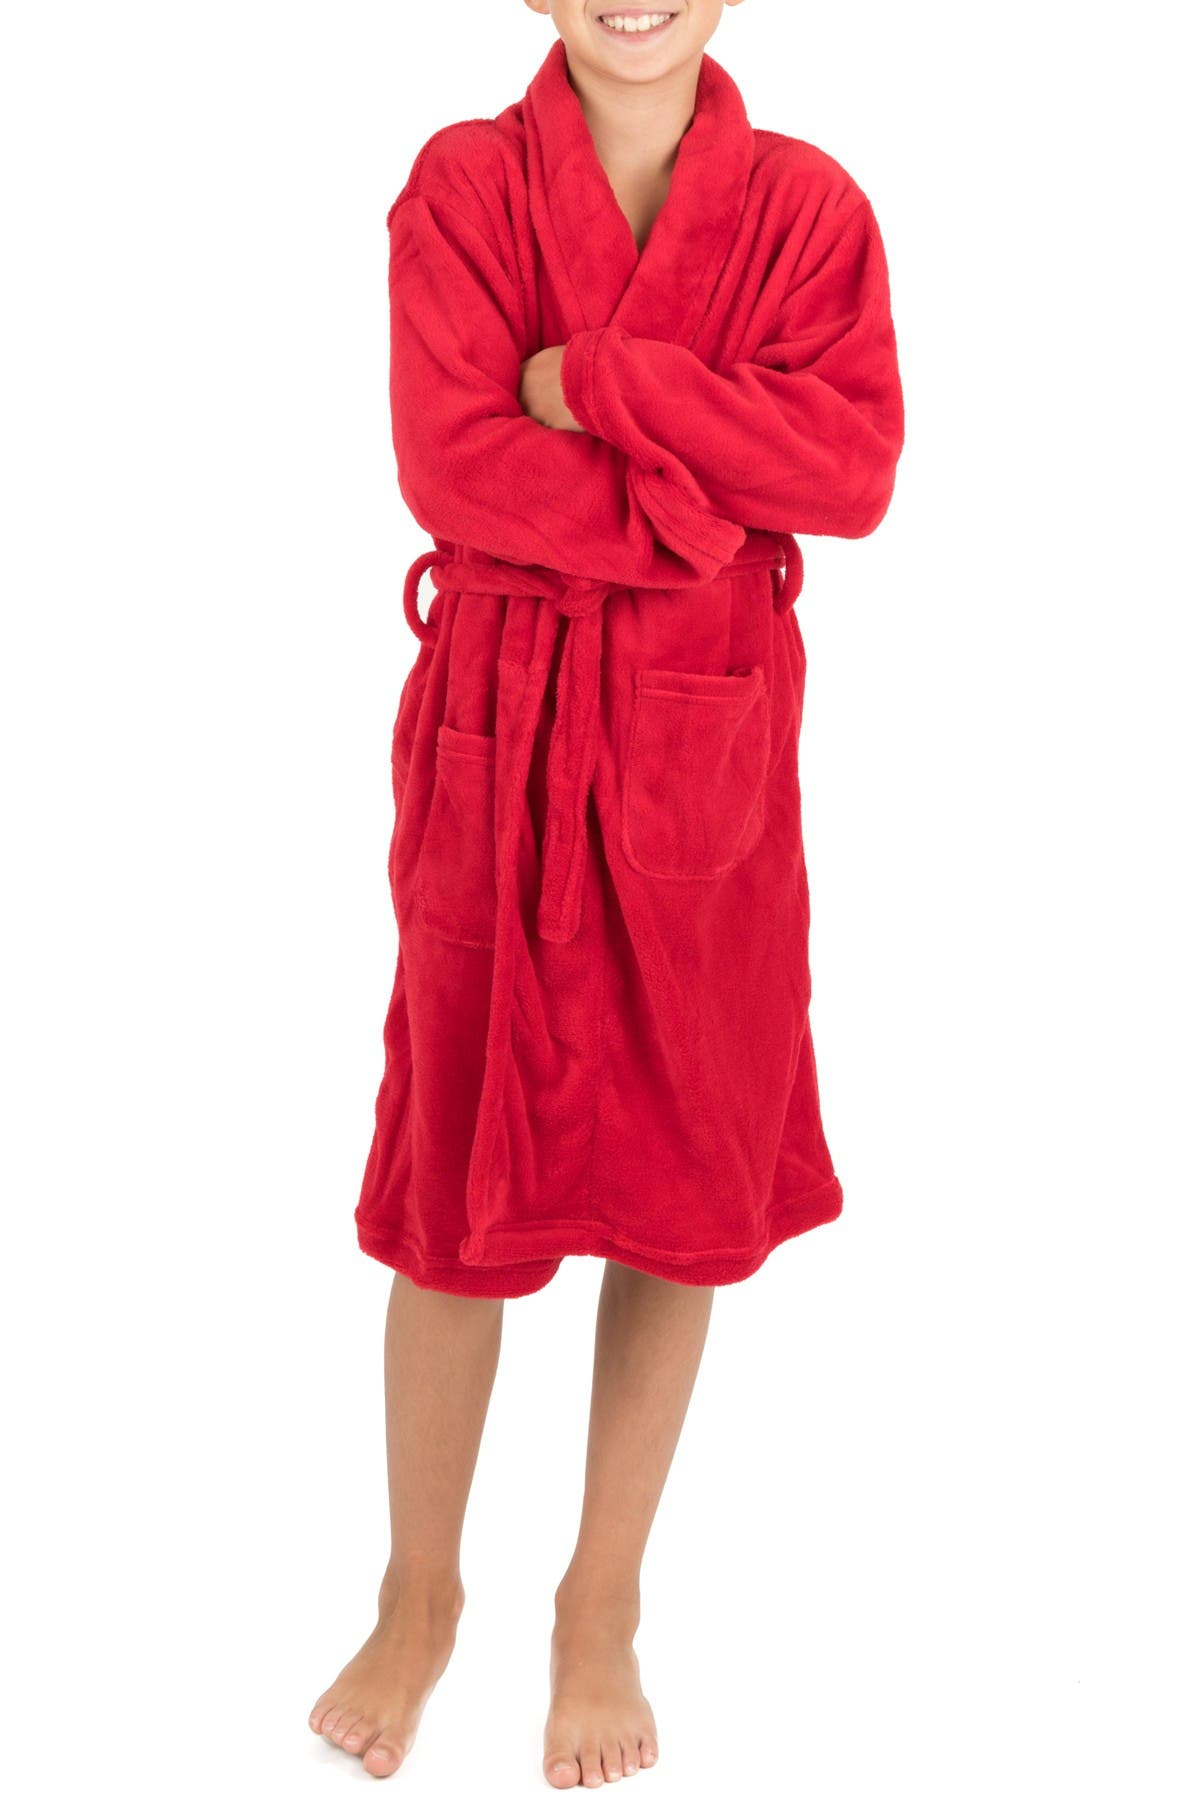 Image of Leveret Red Shawl Collar Fleece Robe